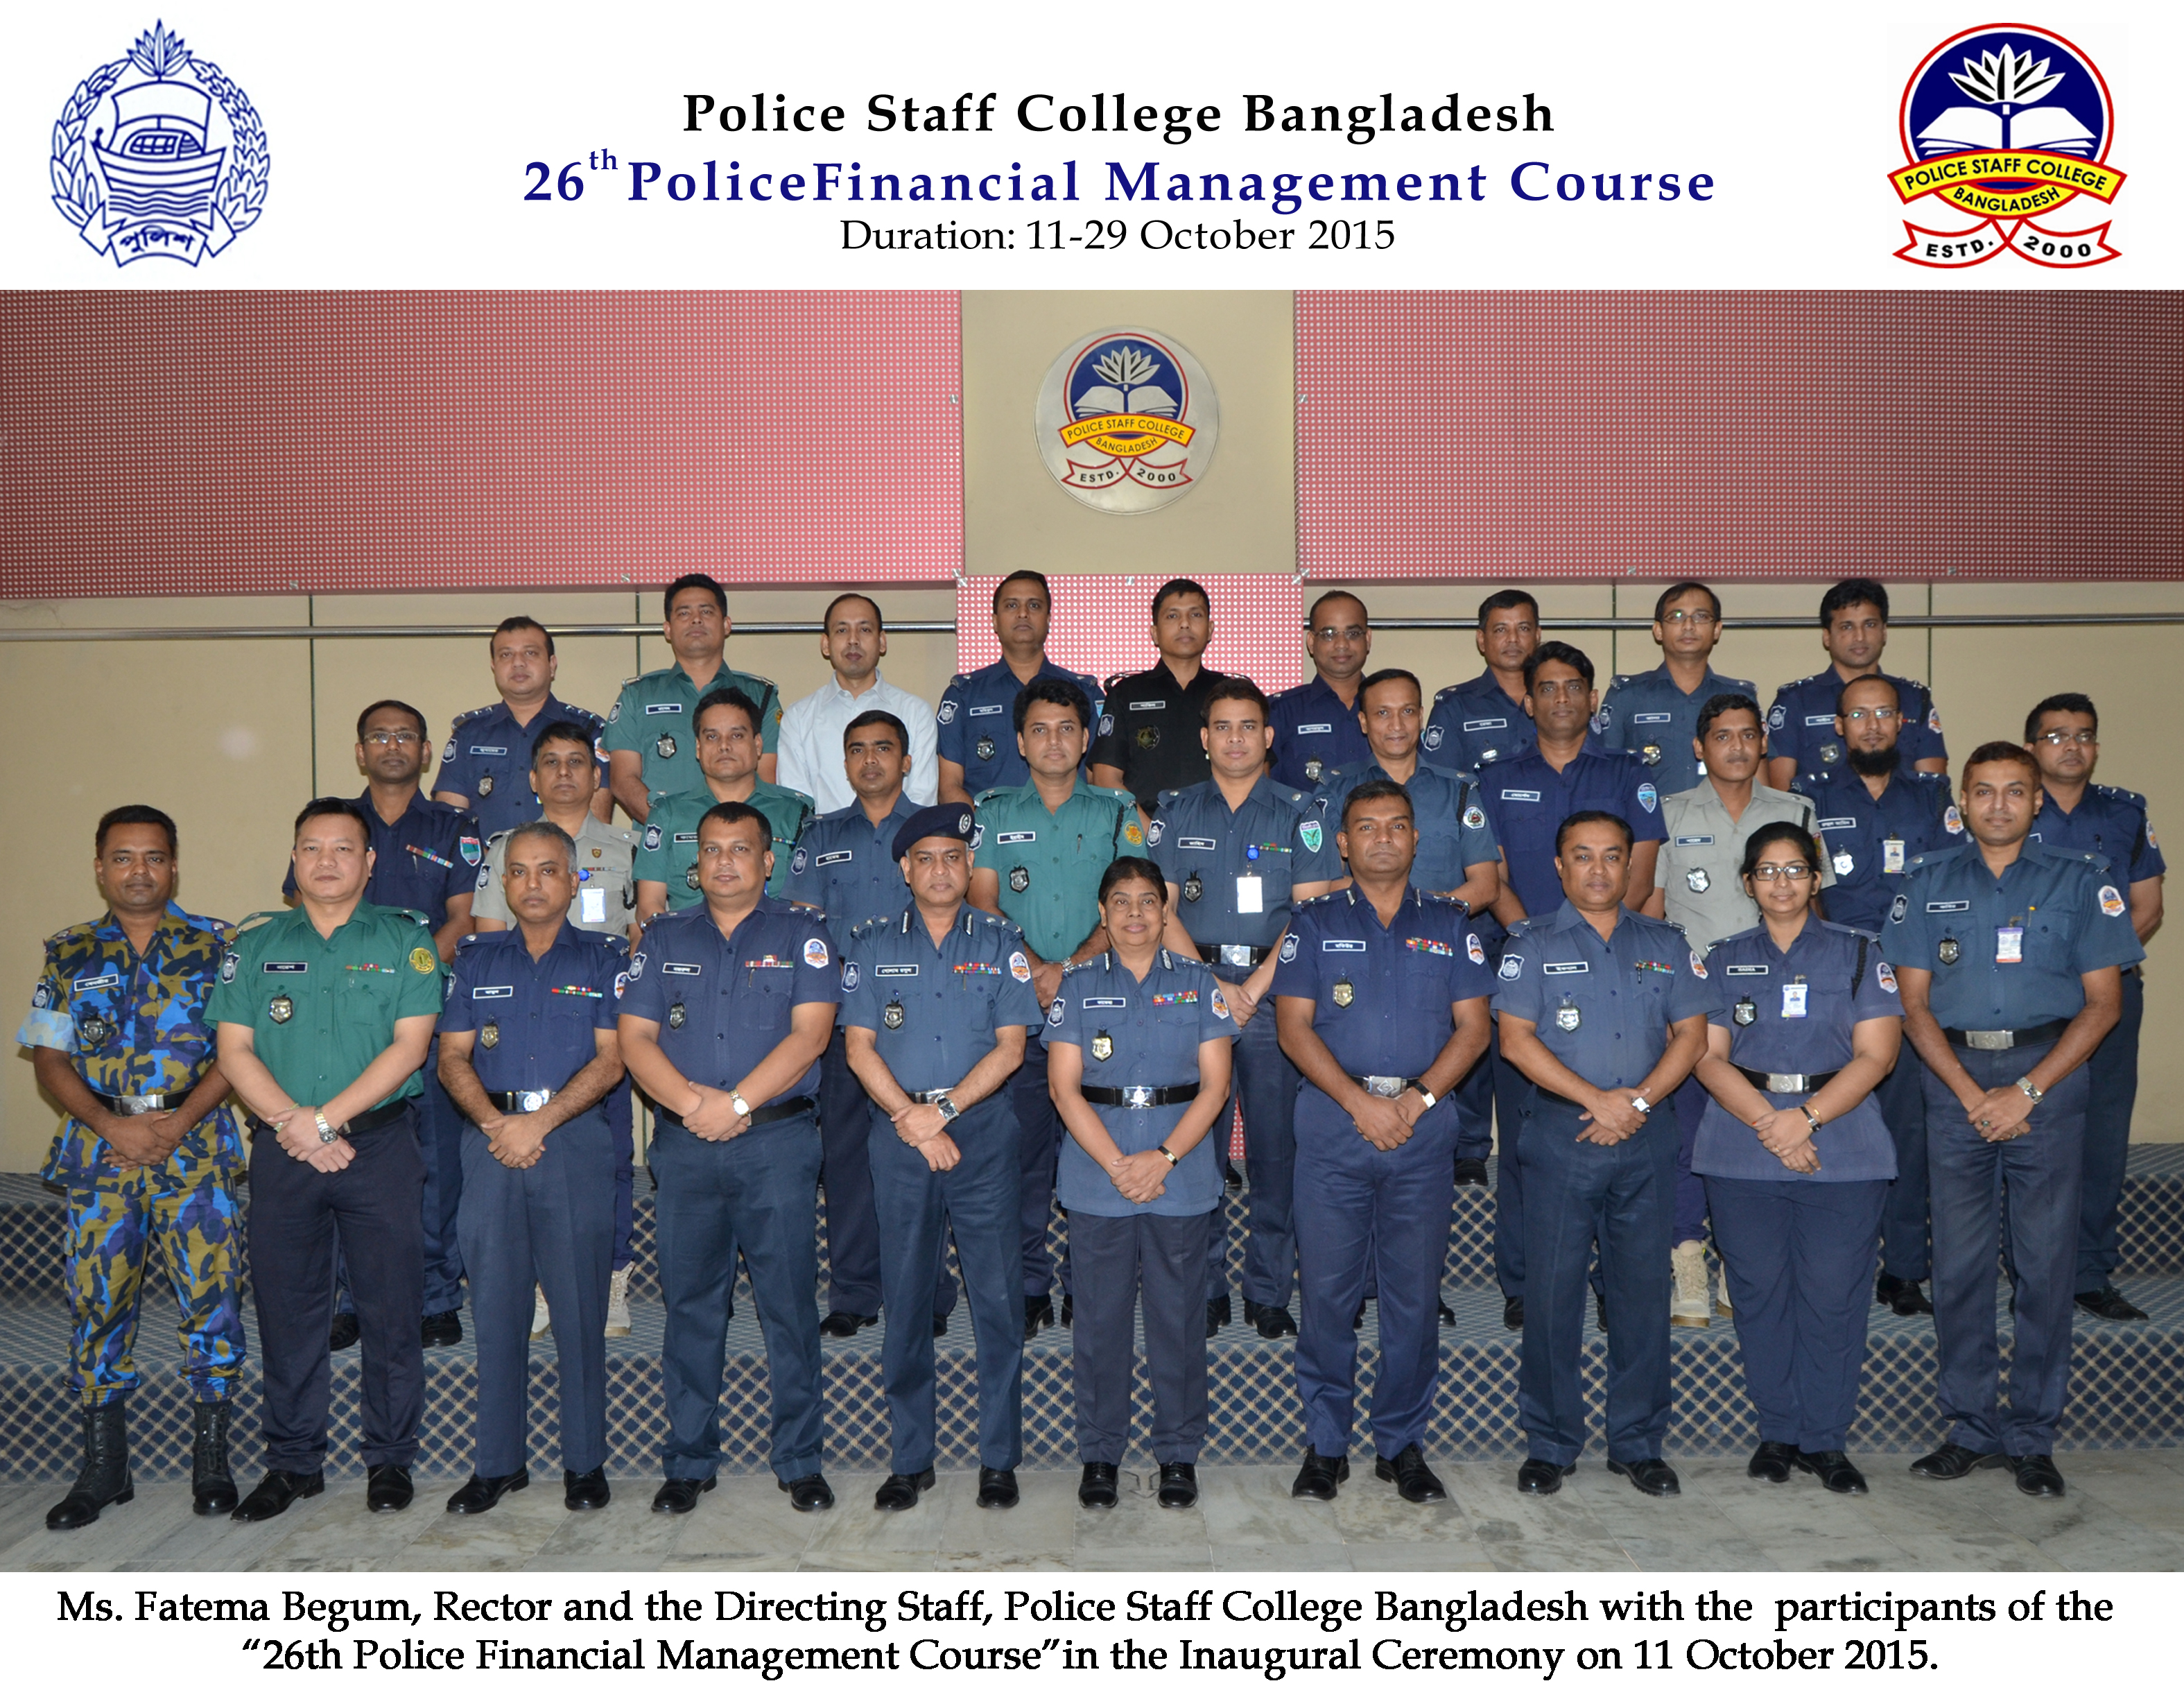 Participant of 26th Police Financial Management Course.